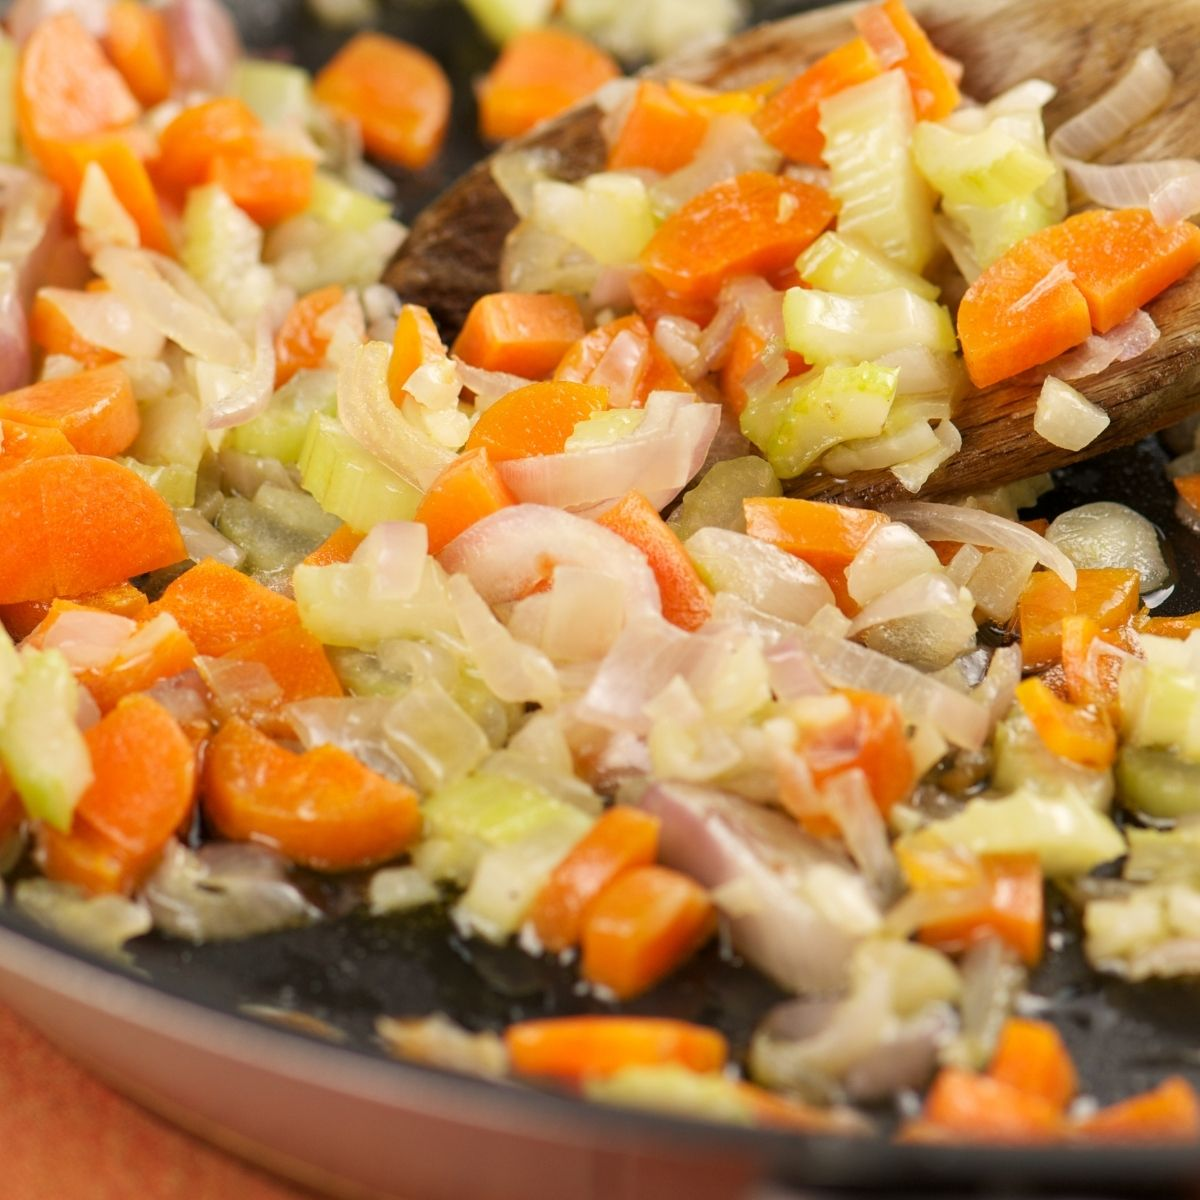 Sautéing carrots, onion, and celery in a pan.